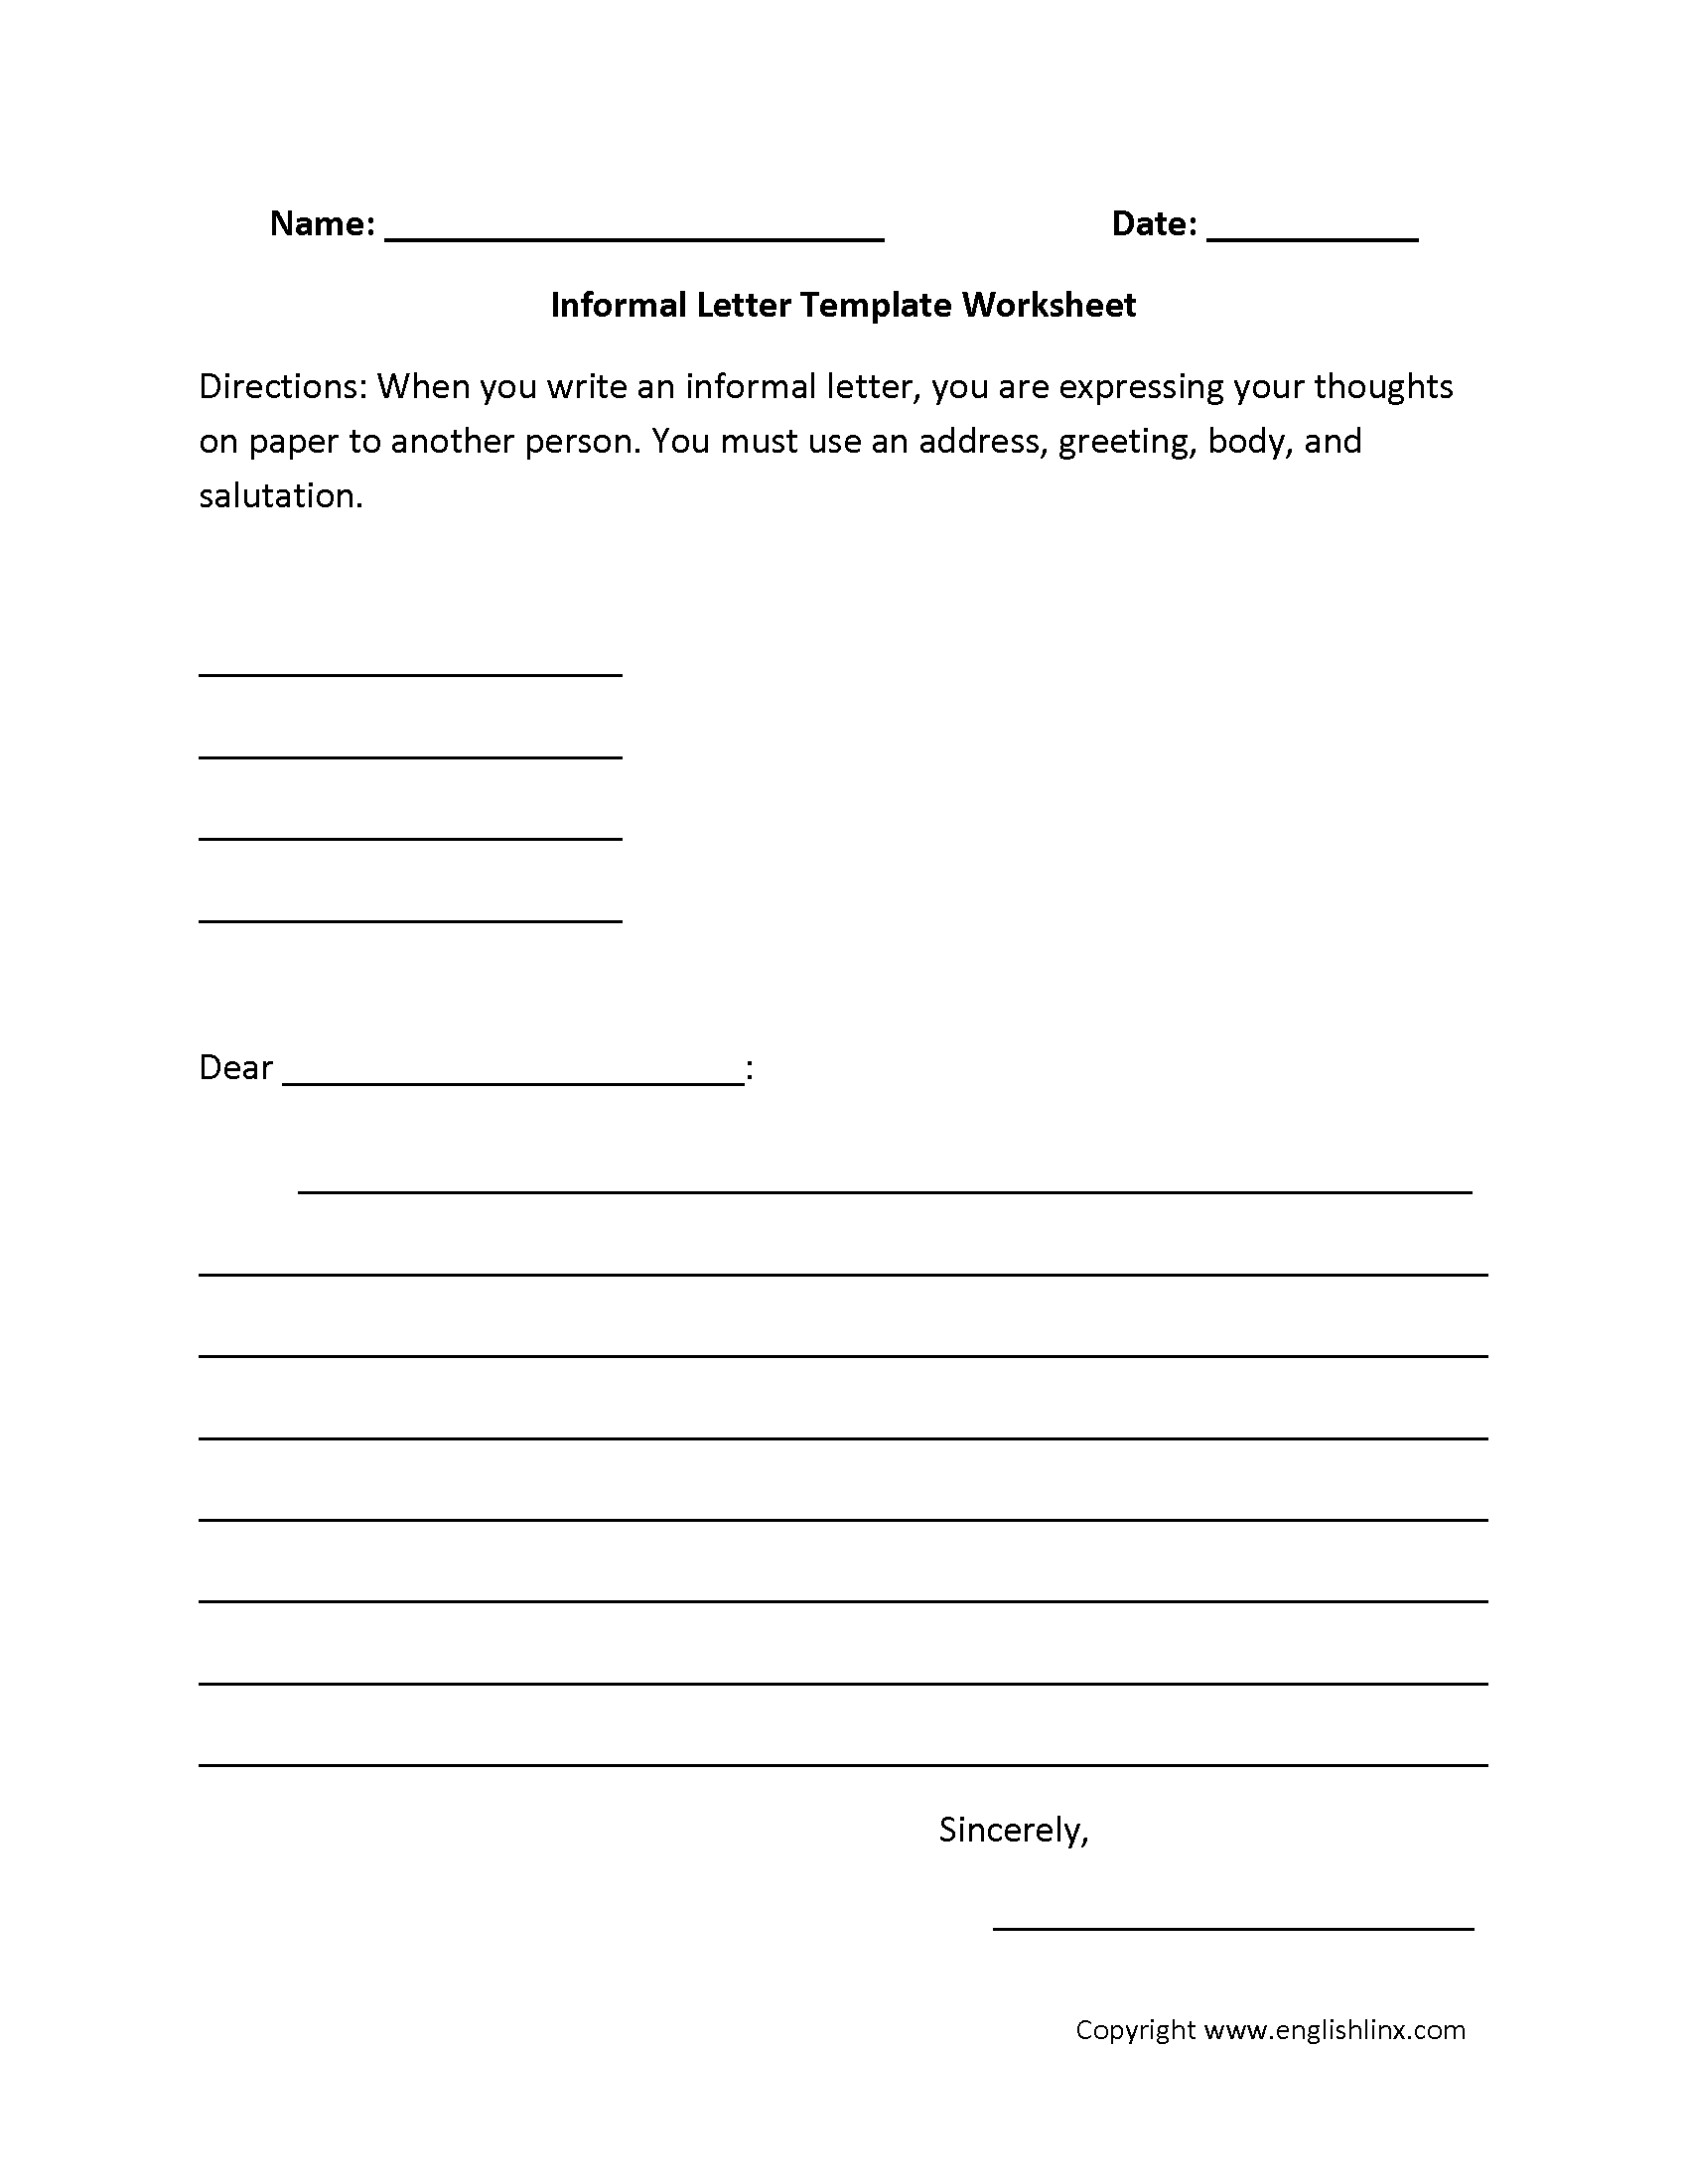 Informal Letter Writing Worksheets